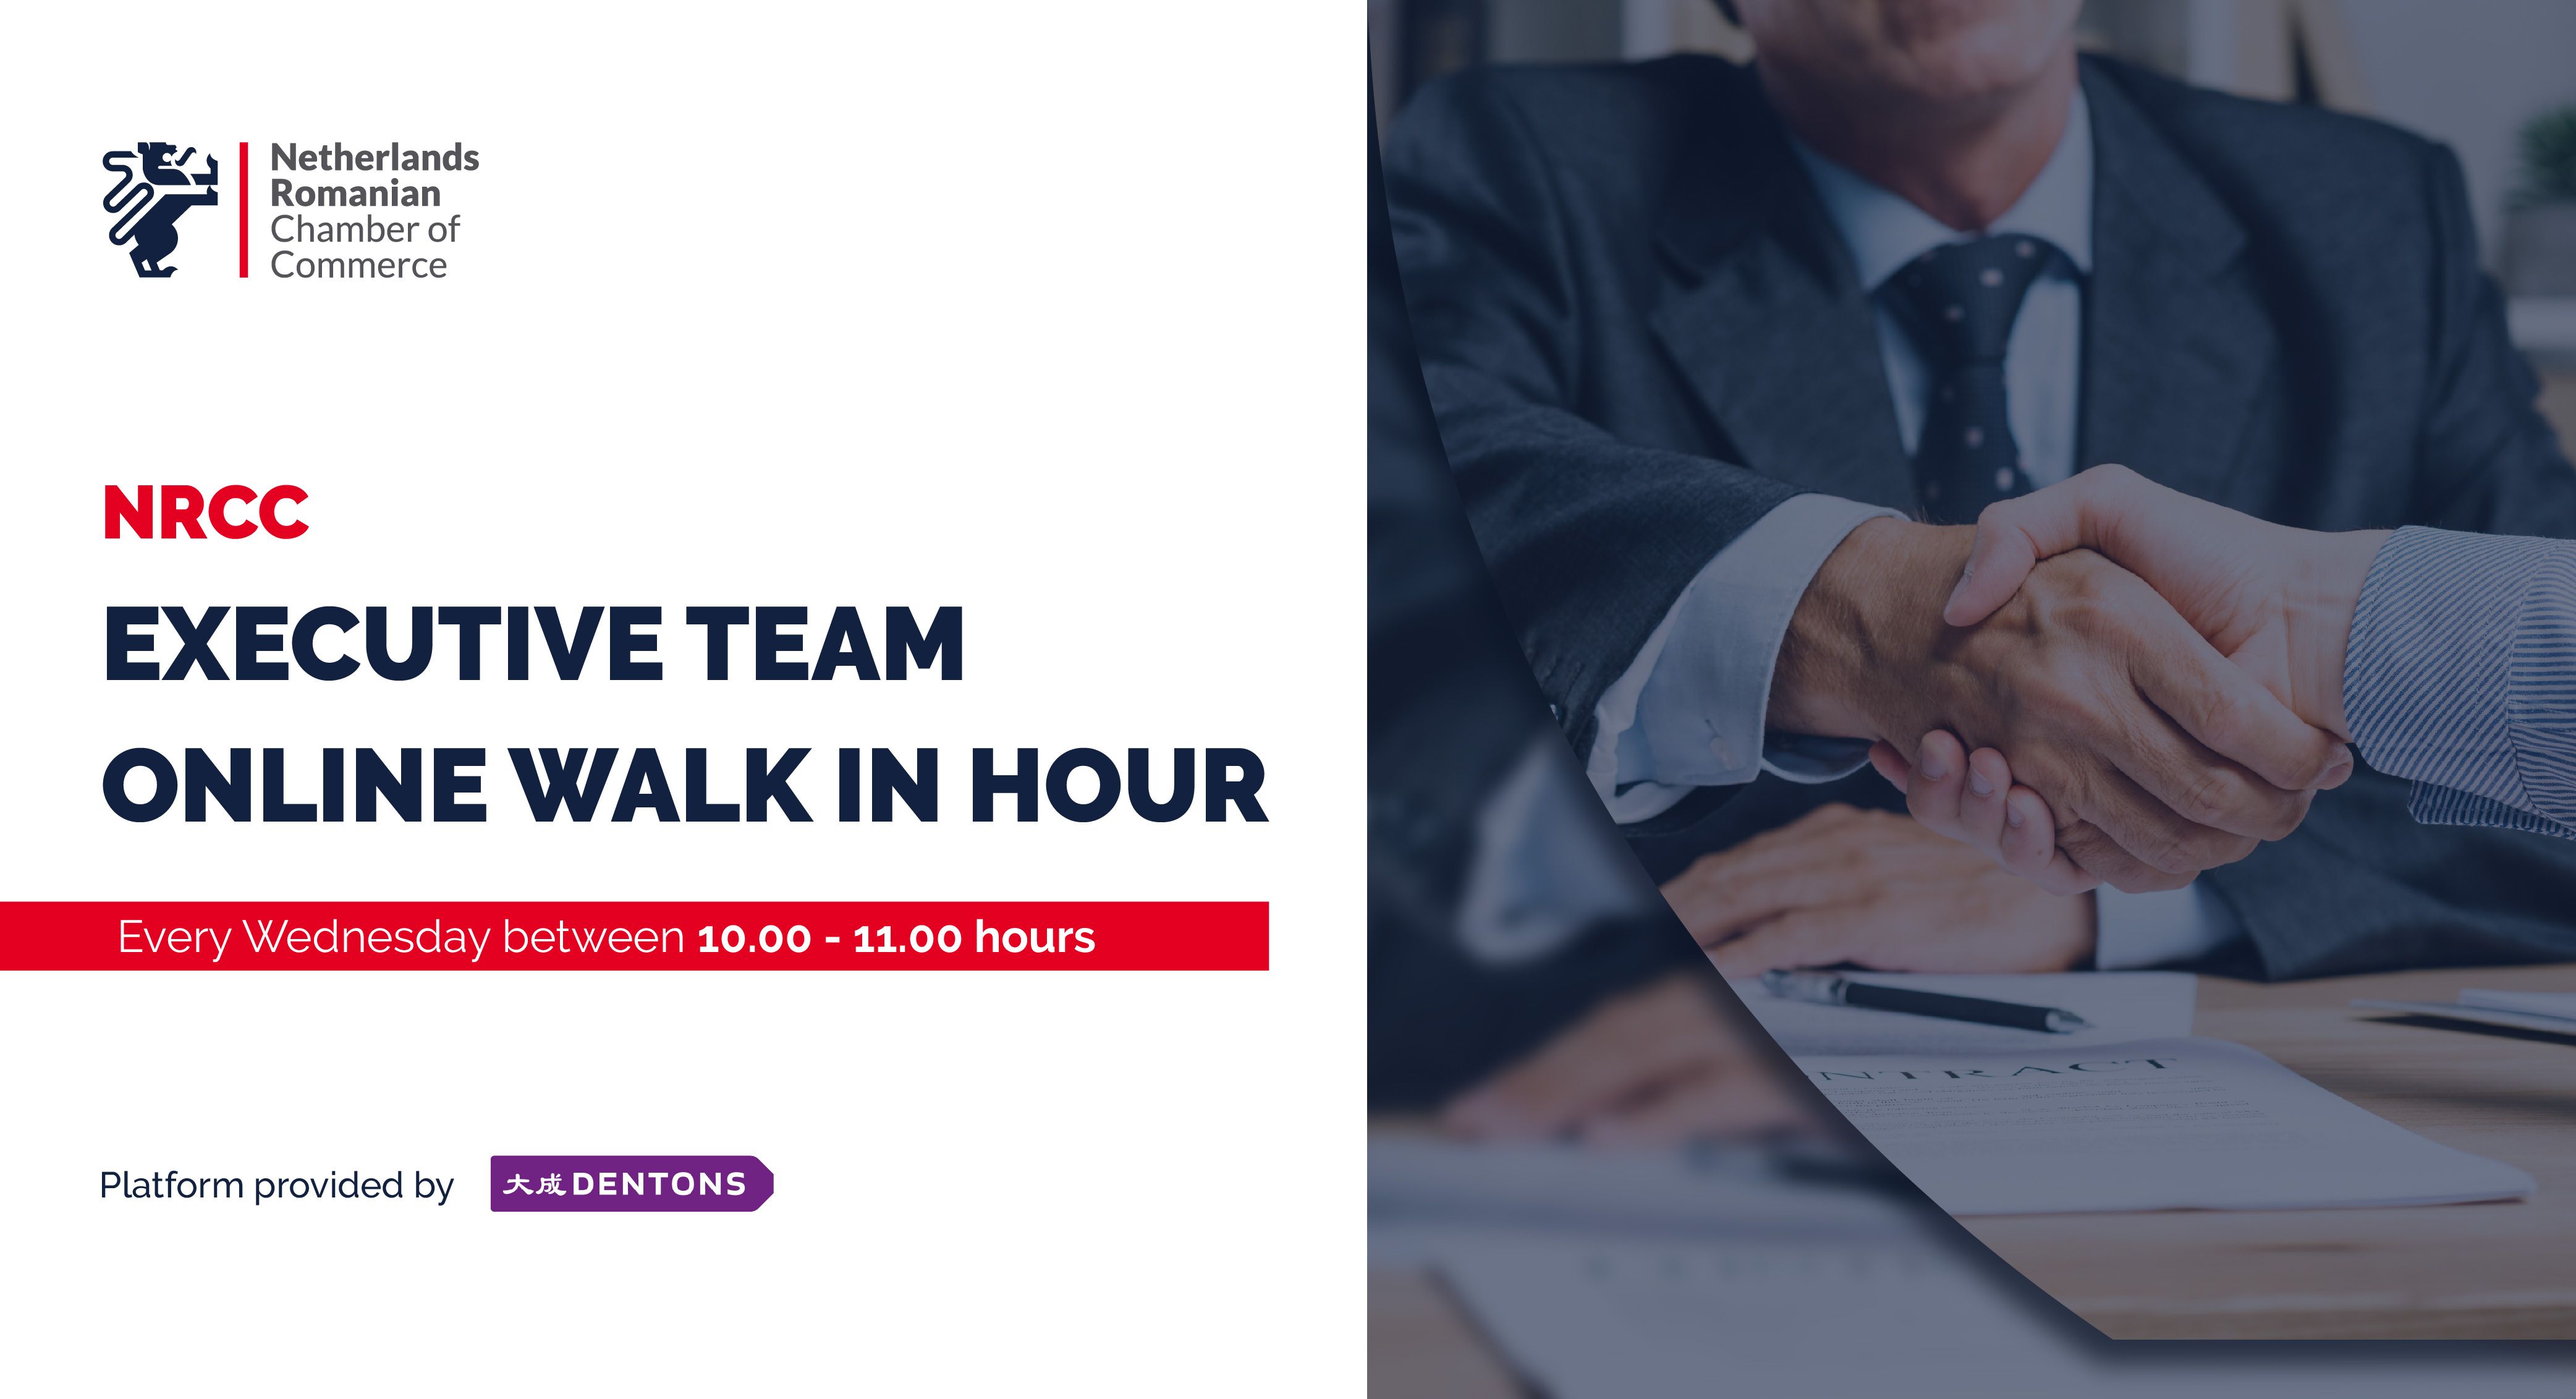 NRCC EXECUTIVE TEAM ONLINE WALK IN HOUR 24 FEB